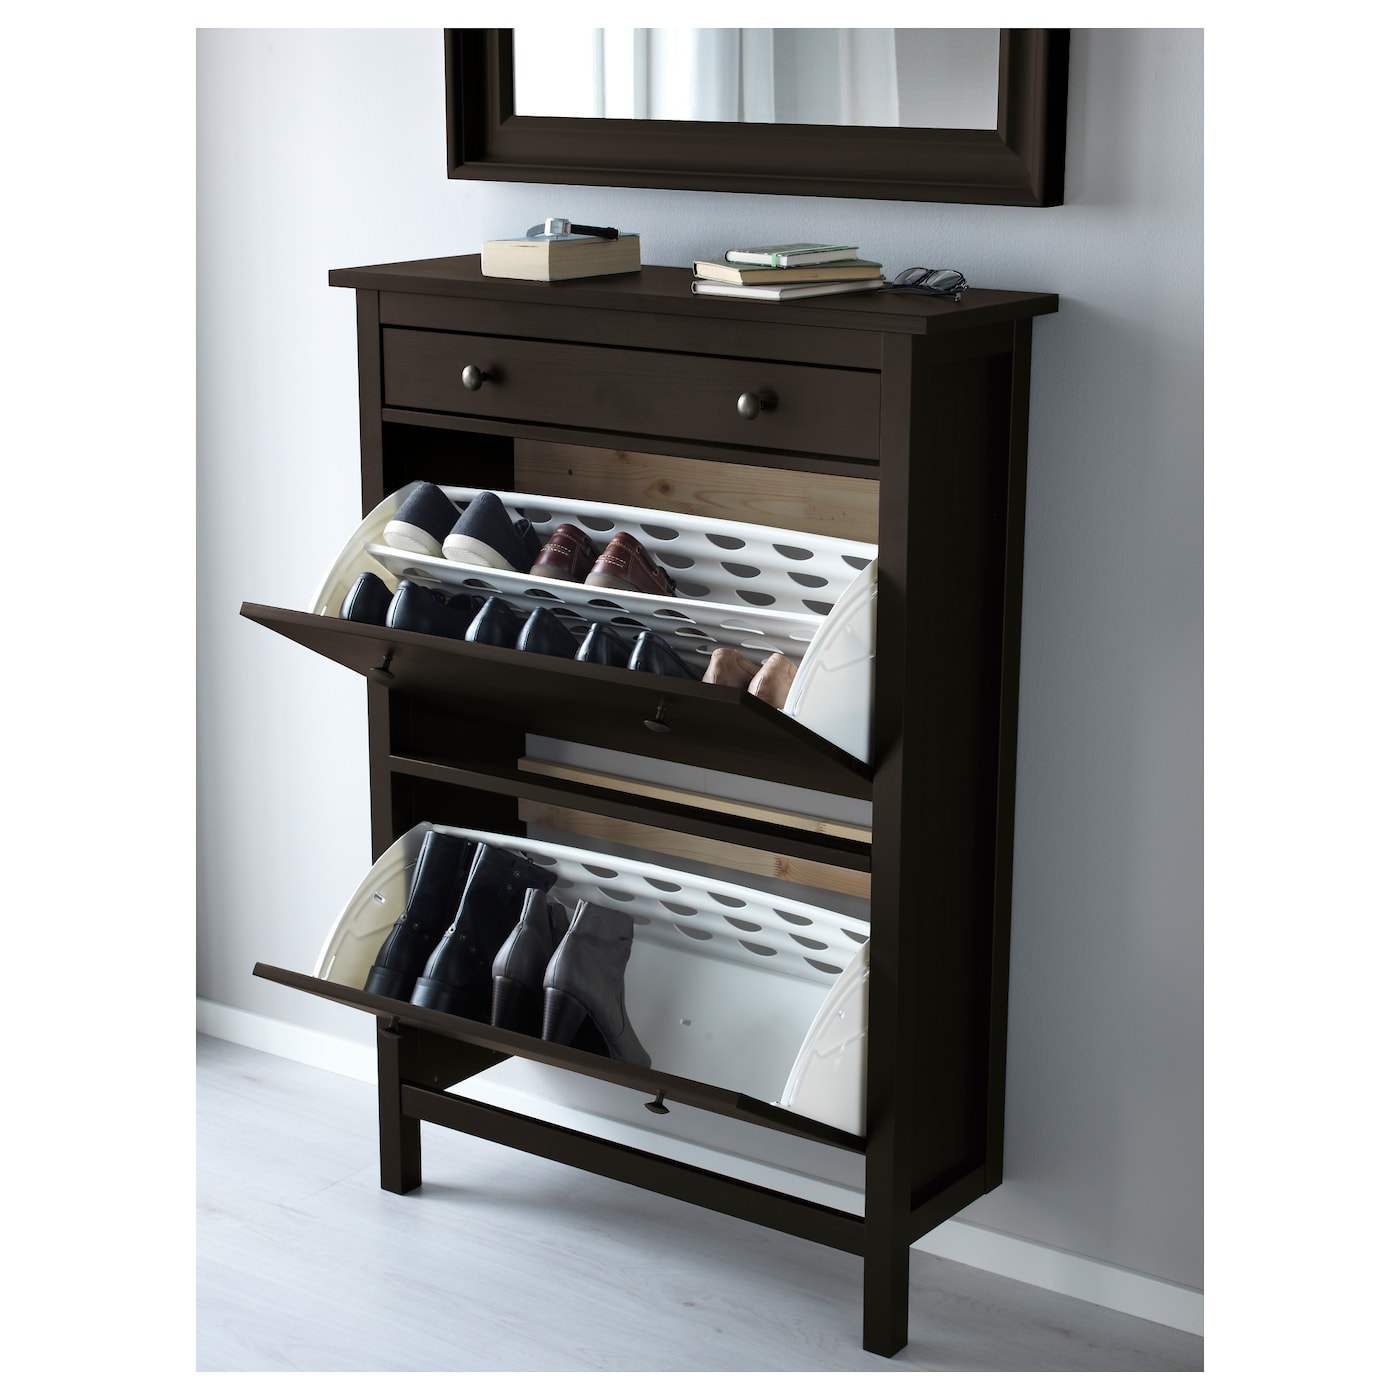 Hemnes shoe cabinet with 2 compartments black brown 89x127 cm ikea Shoe cabinet bench